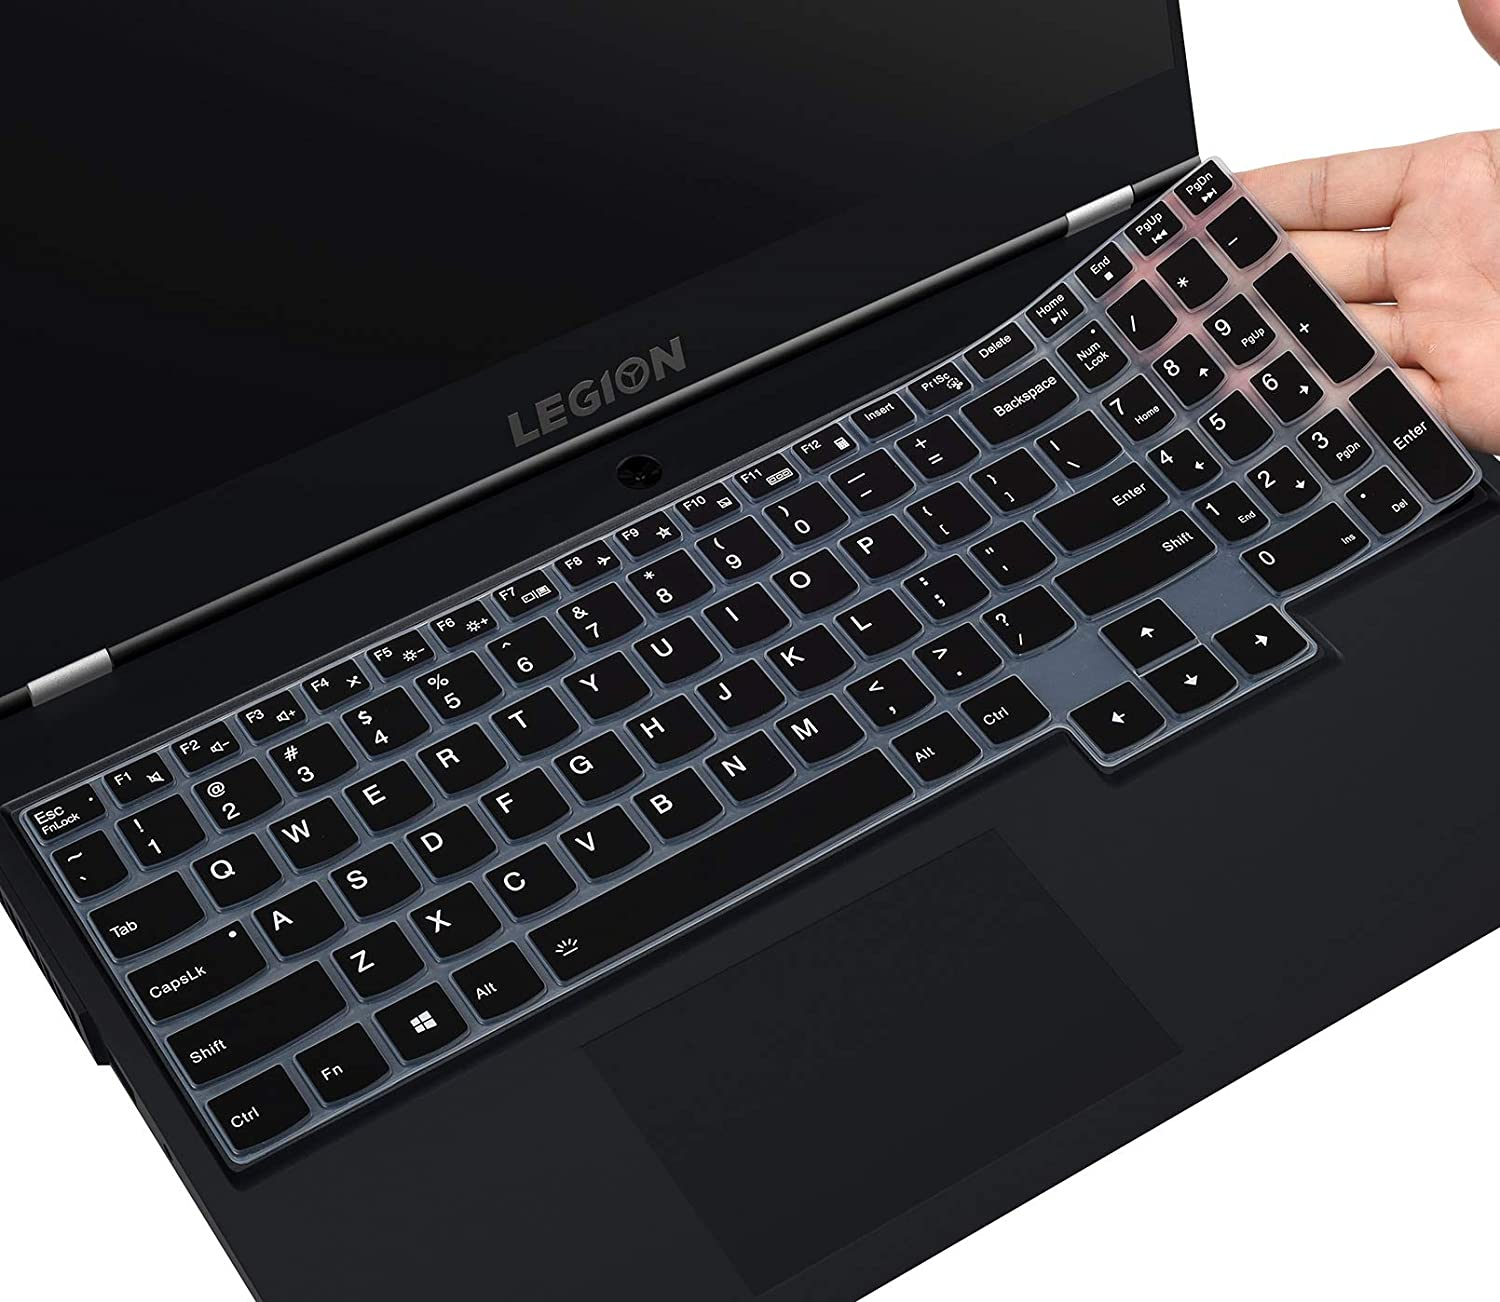 Keyboard Cover for Lenovo Legion 5 Gaming Laptop Legion 5 5i 5p 5pi 15.6 17.3 inch/Legion 7i Gaming Laptop/IdeaPad Gaming 3i Laptop, Legion 5 Keyboard Skin Protector, Black